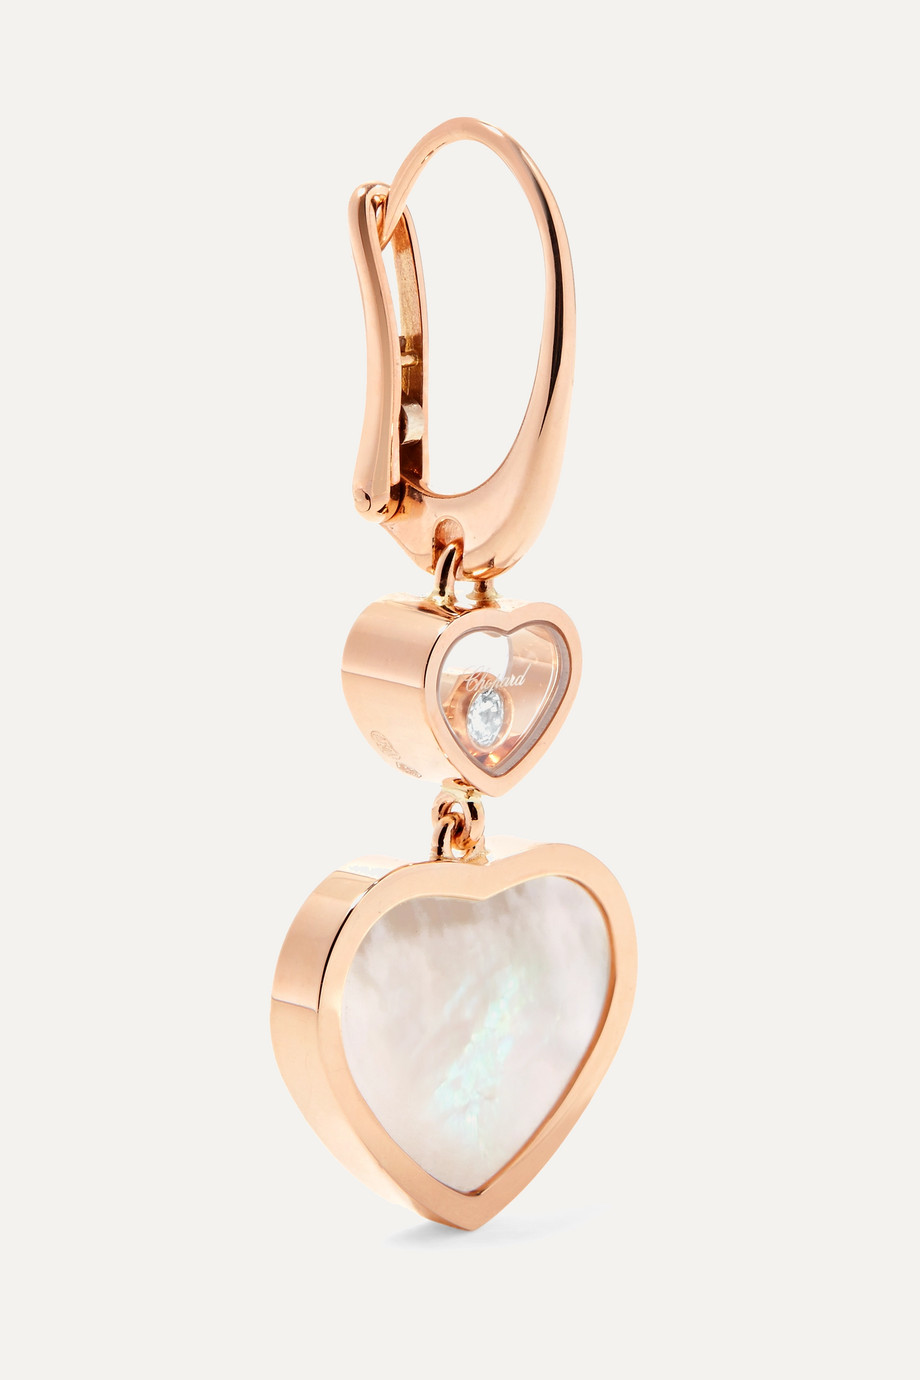 Chopard Boucles d'oreilles en or rose 18 carats, diamants et nacre Happy Hearts